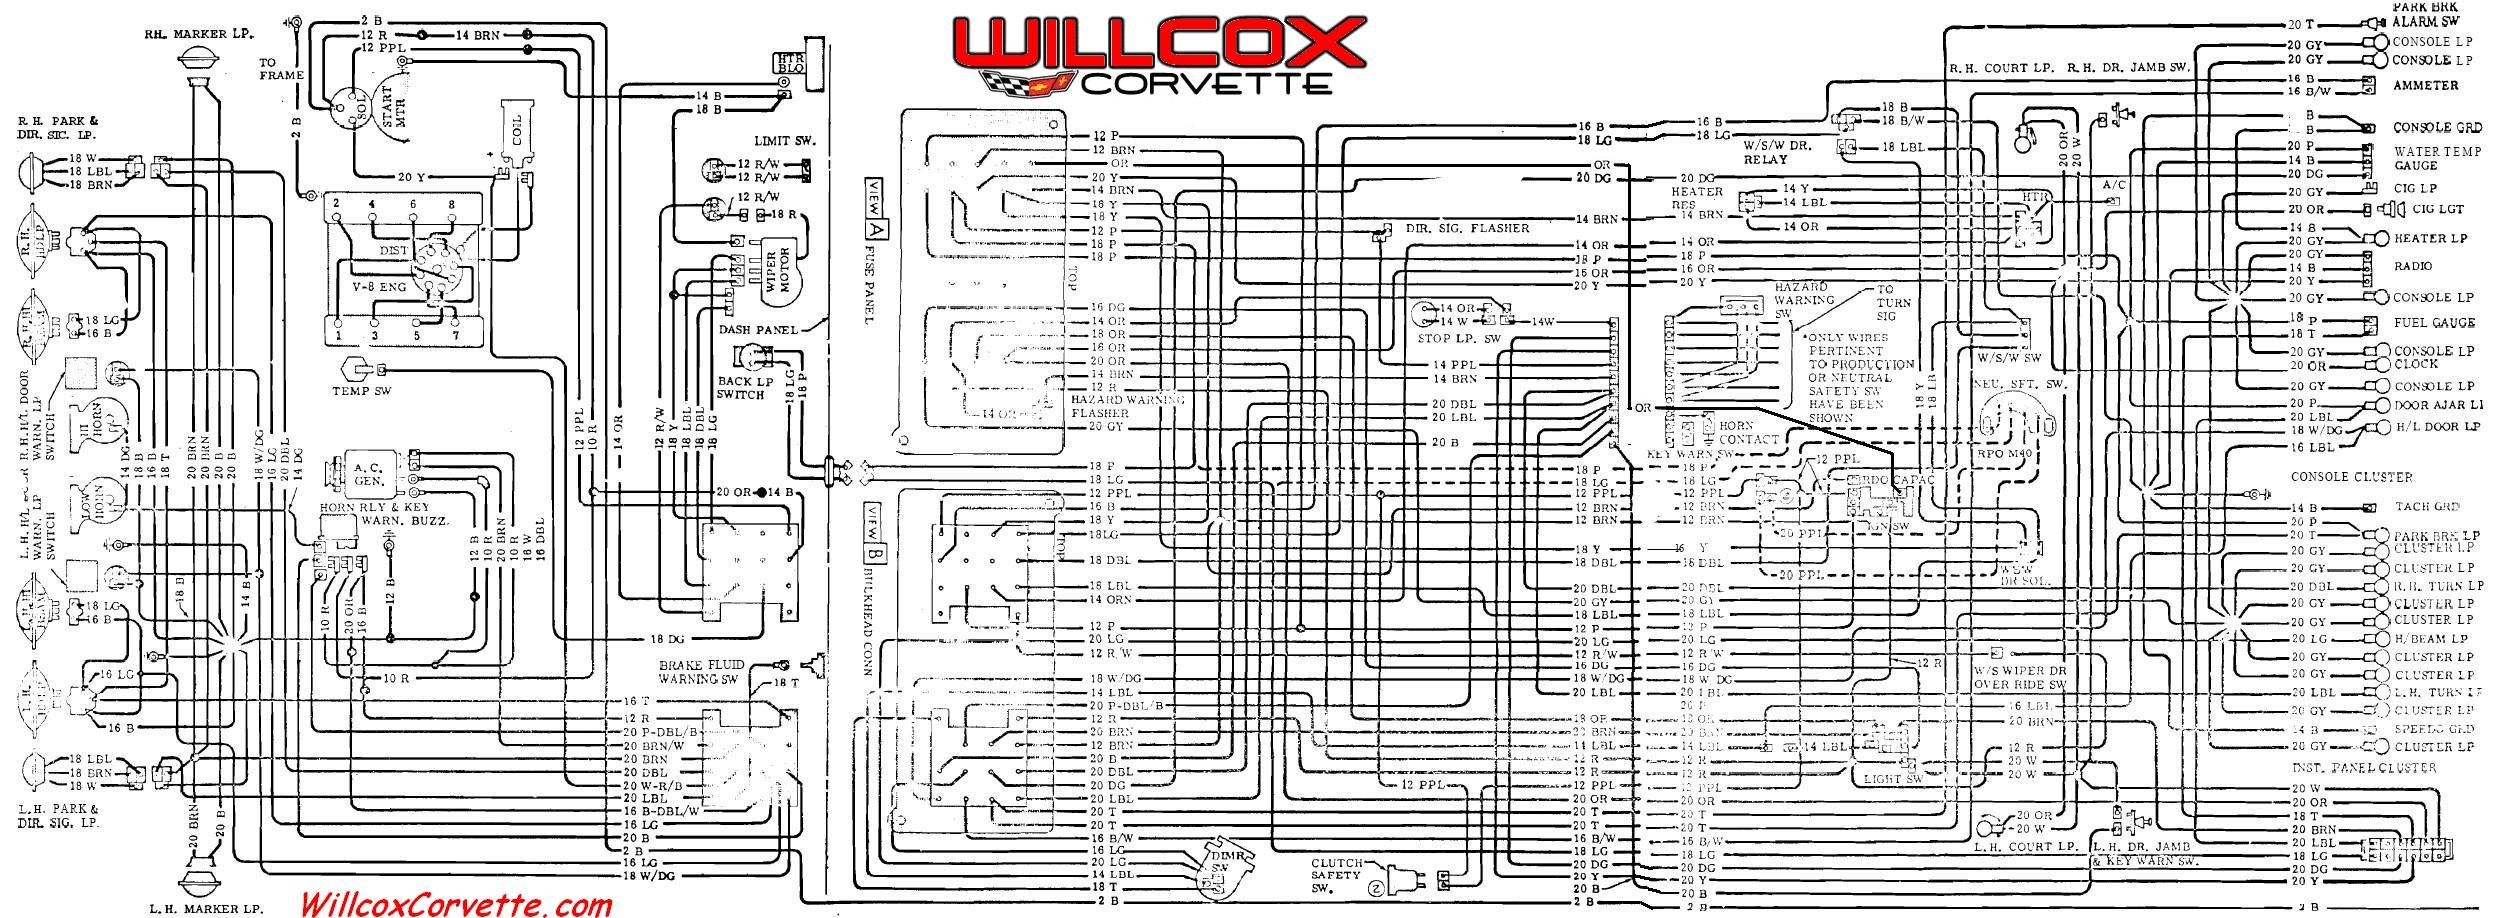 c3 wiring diagram books of wiring diagram u2022 rh mattersoflifecoaching co citroen xsara wiring diagrams download [ 2500 x 918 Pixel ]